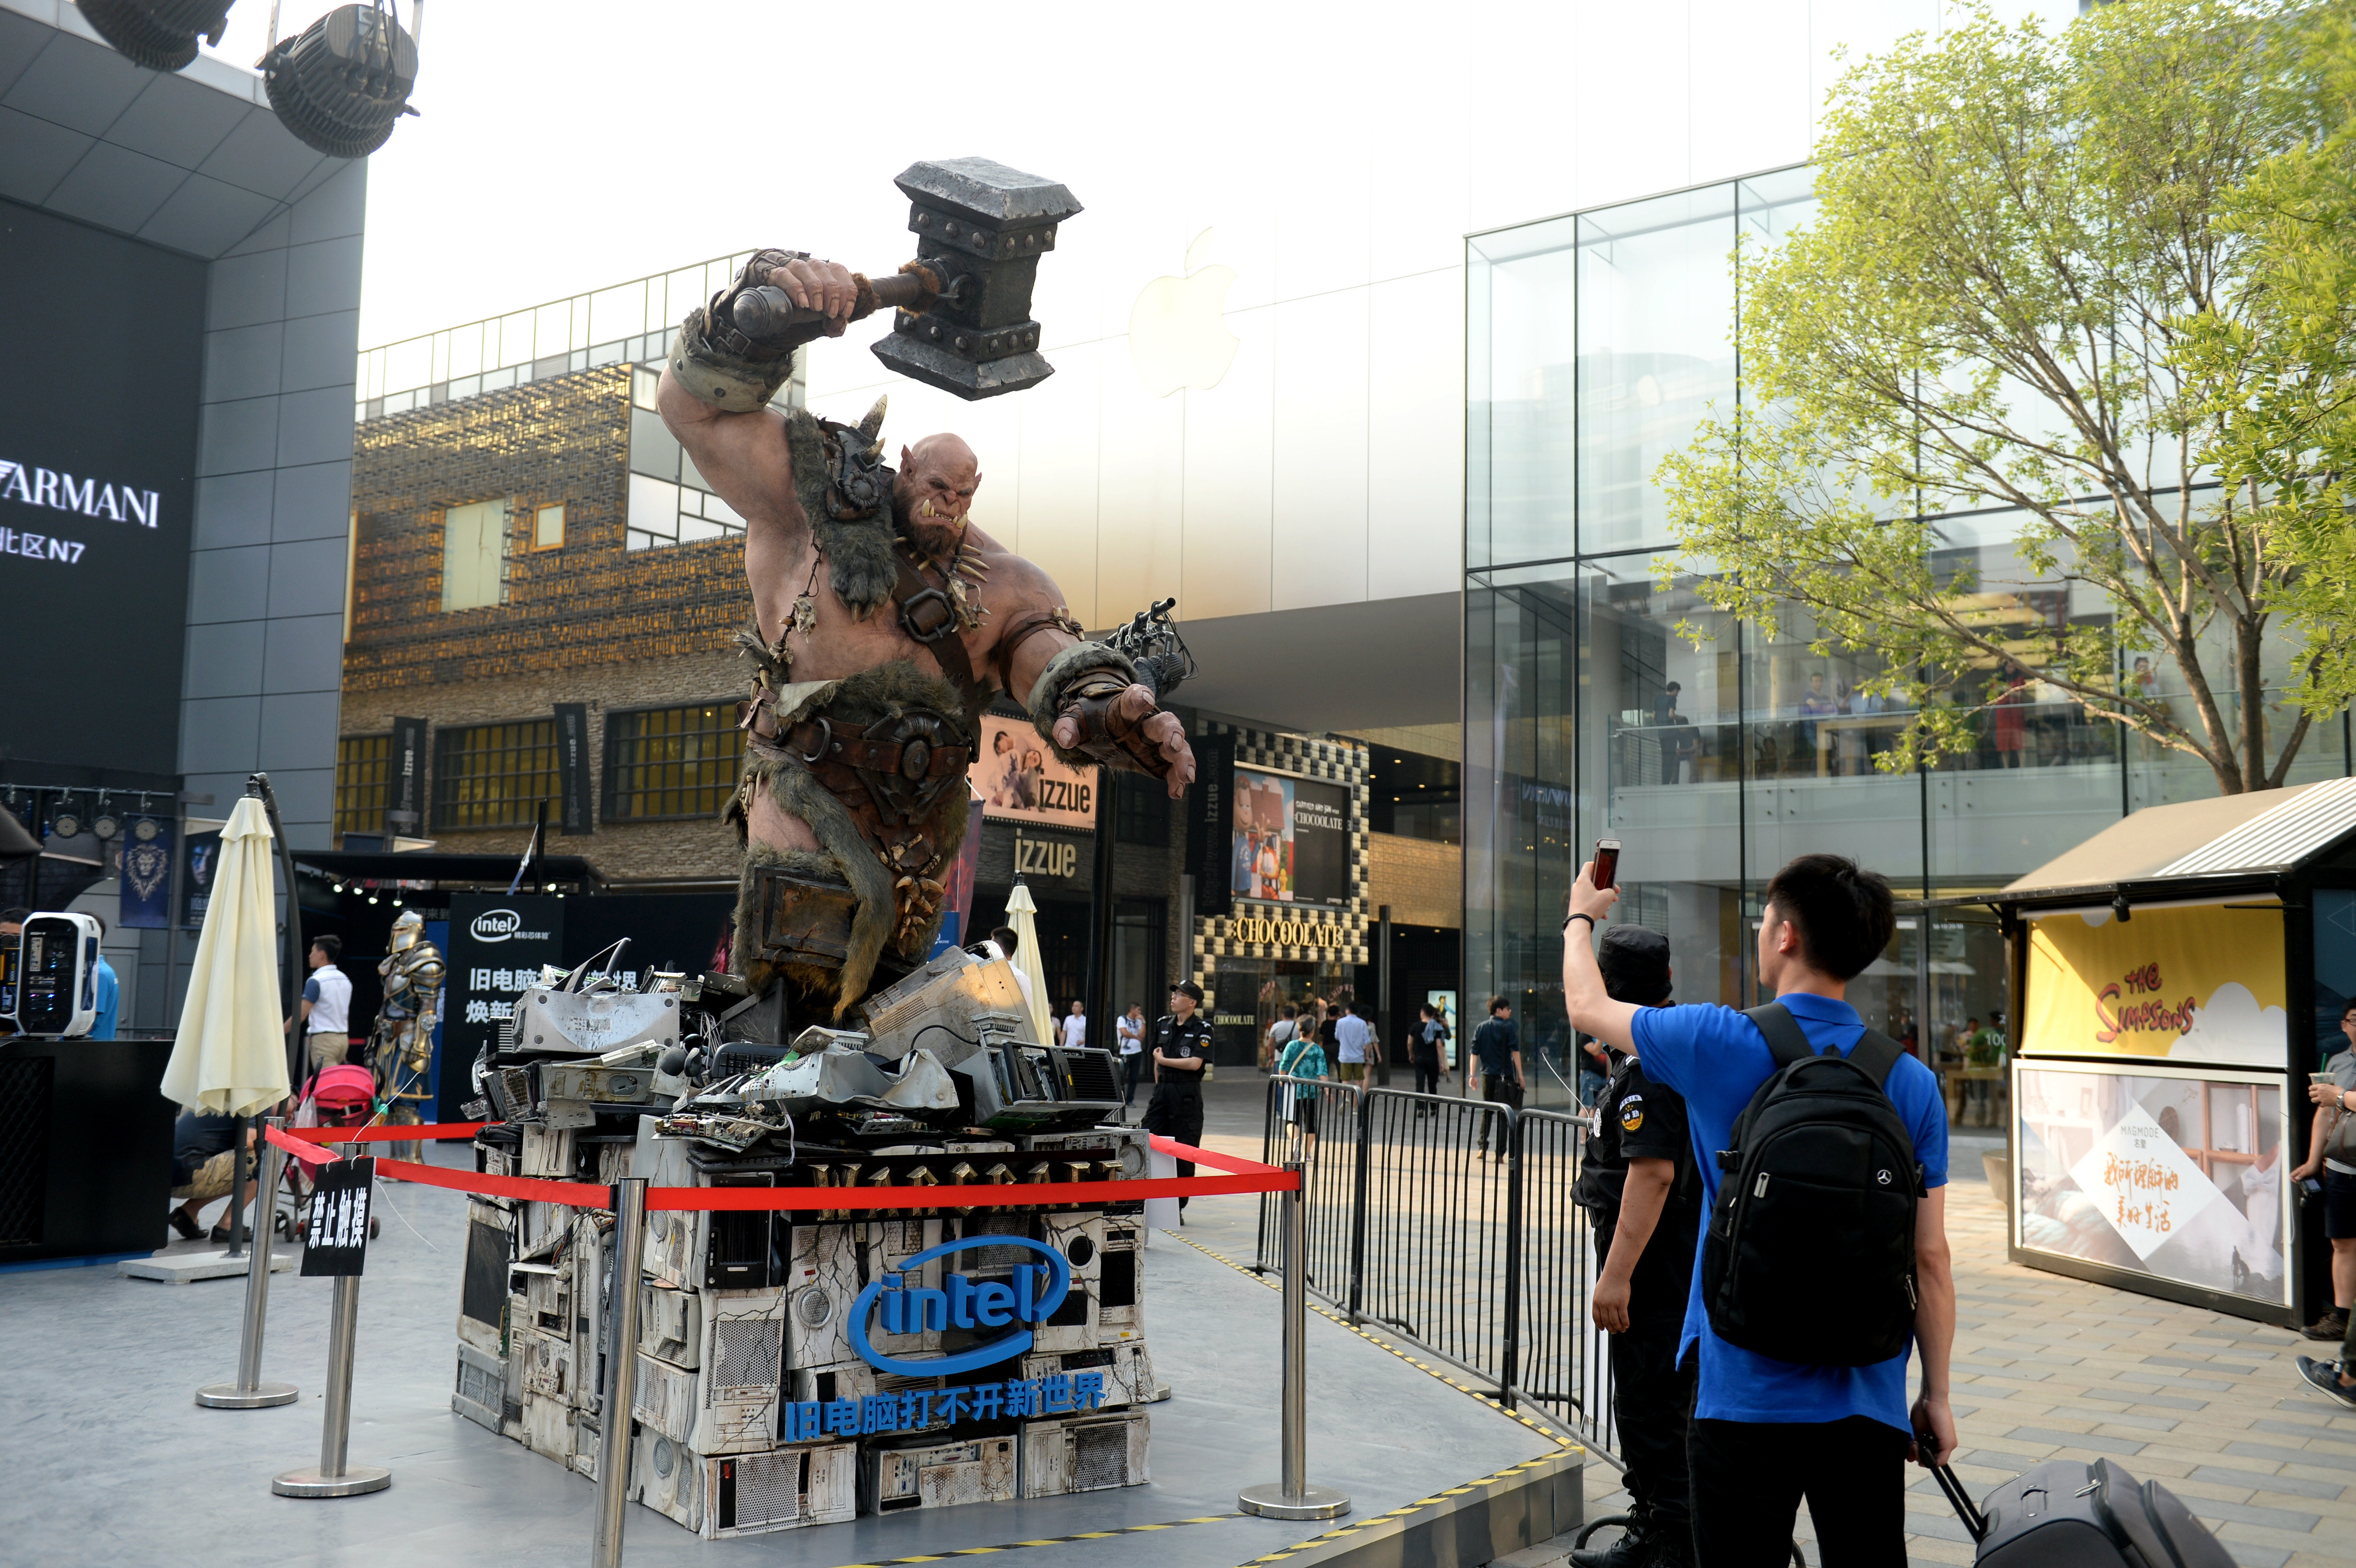 World Of Warcraft And Intel Hold The Campaign At Beijing Sanlitun